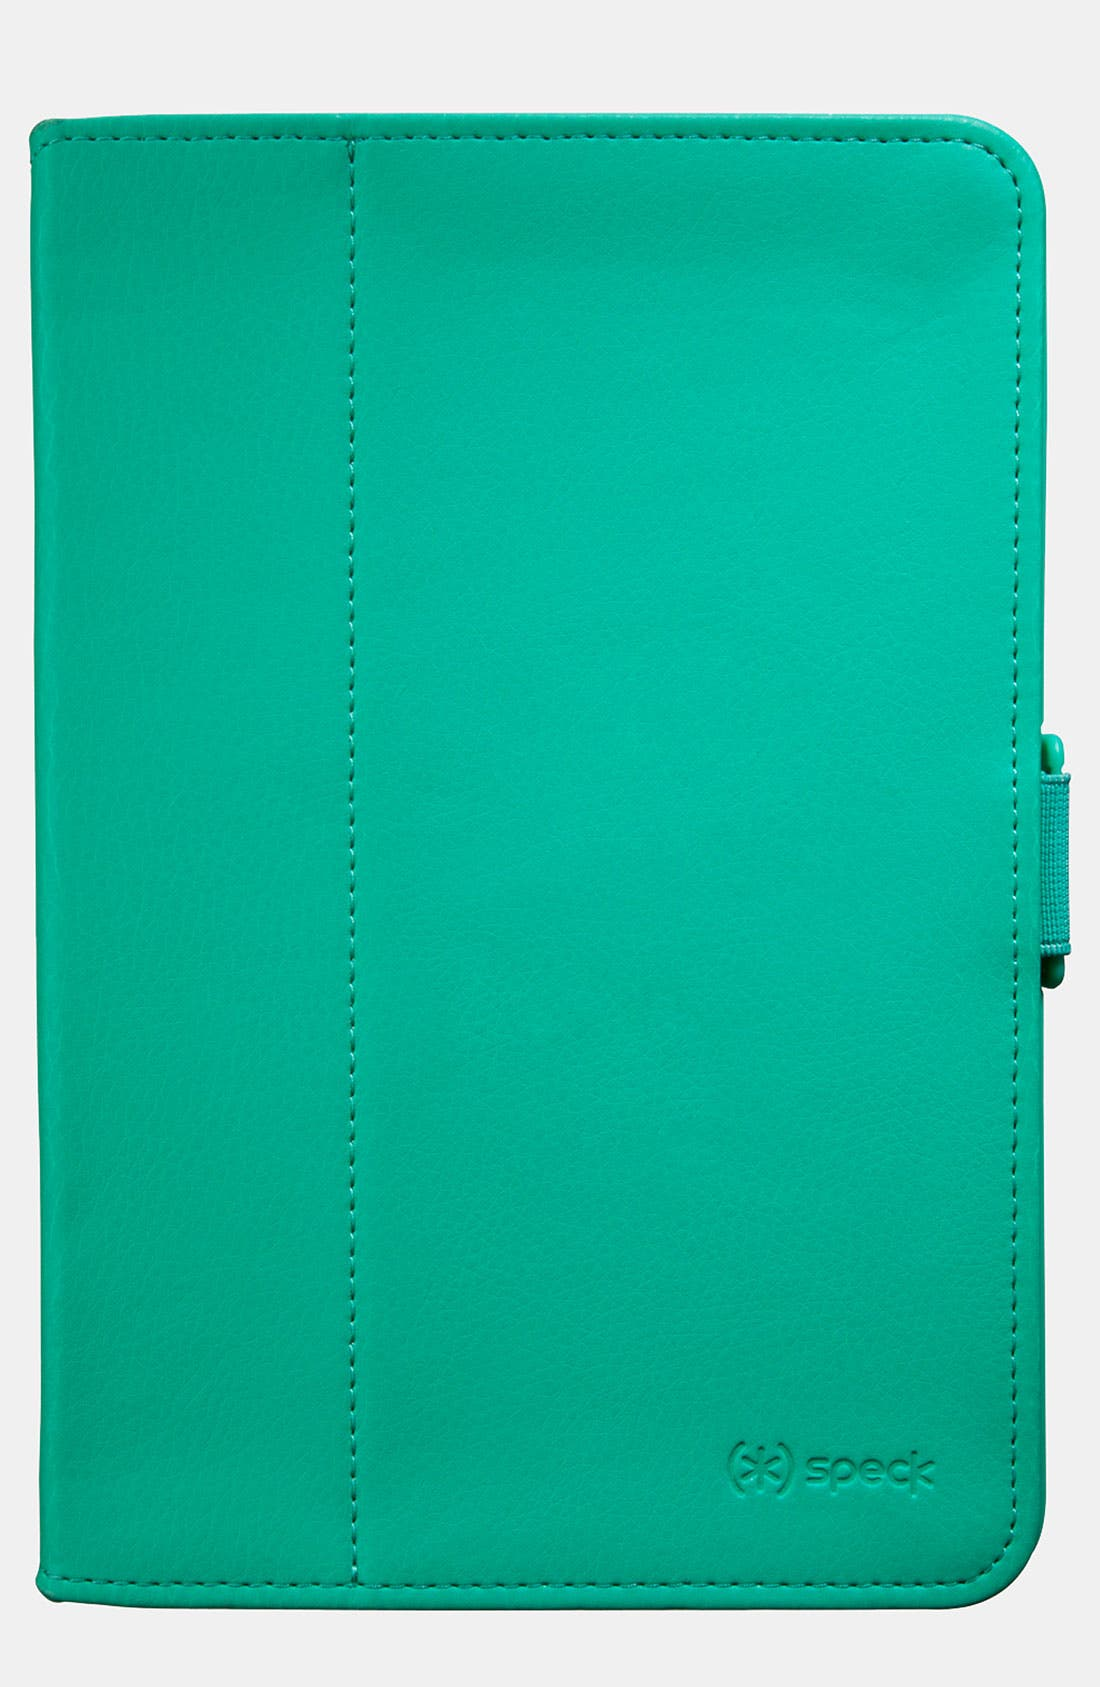 Main Image - Speck 'FitFolio' iPad mini Case